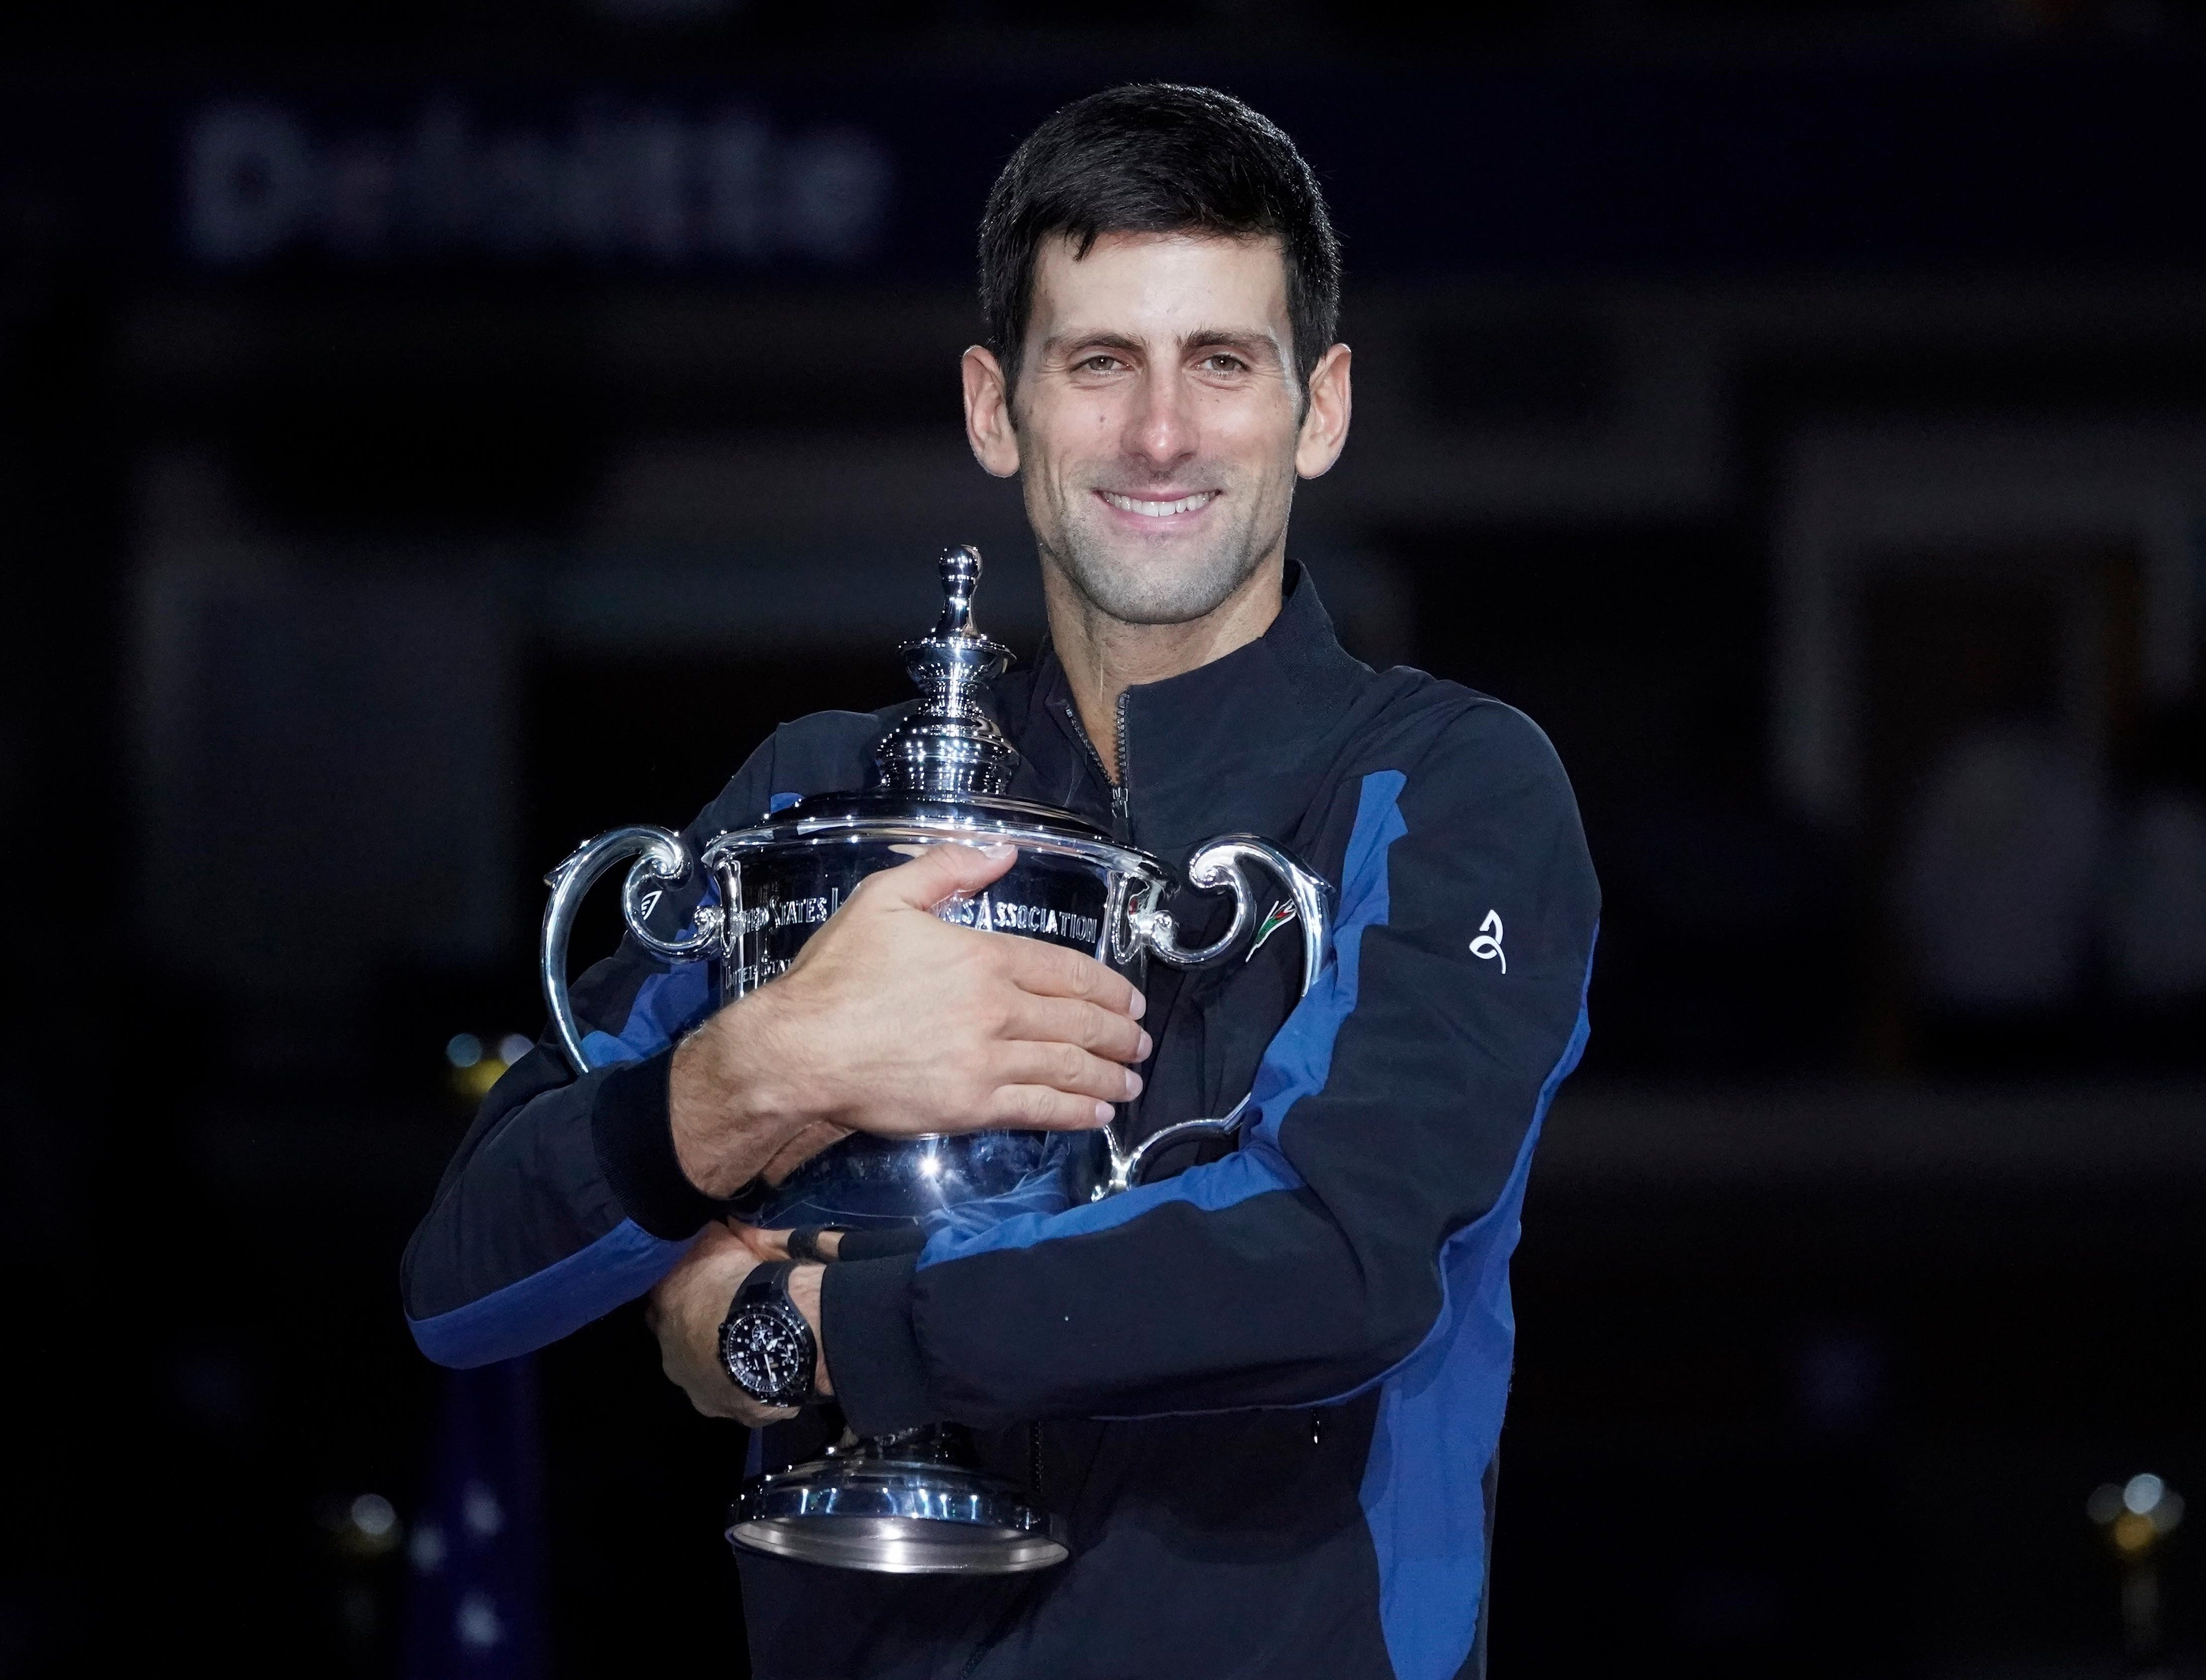 Novak Djokovic celebrates after defeating Juan Martin del Potro to win the US Open final.